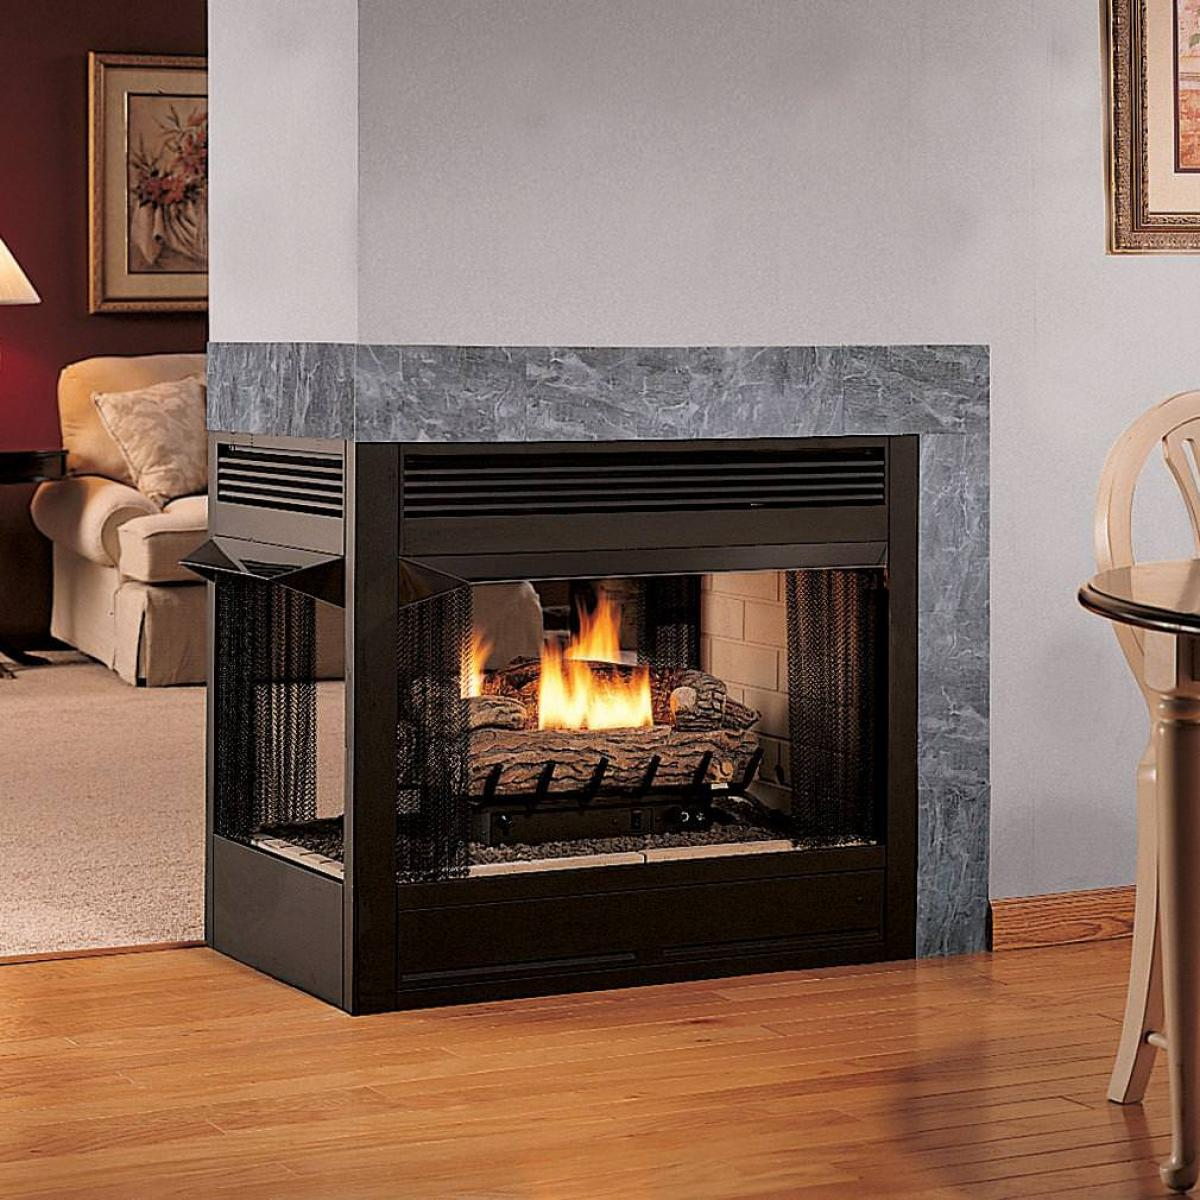 modern-propane-fireplaces-with-unusual-place-of-wall-partition